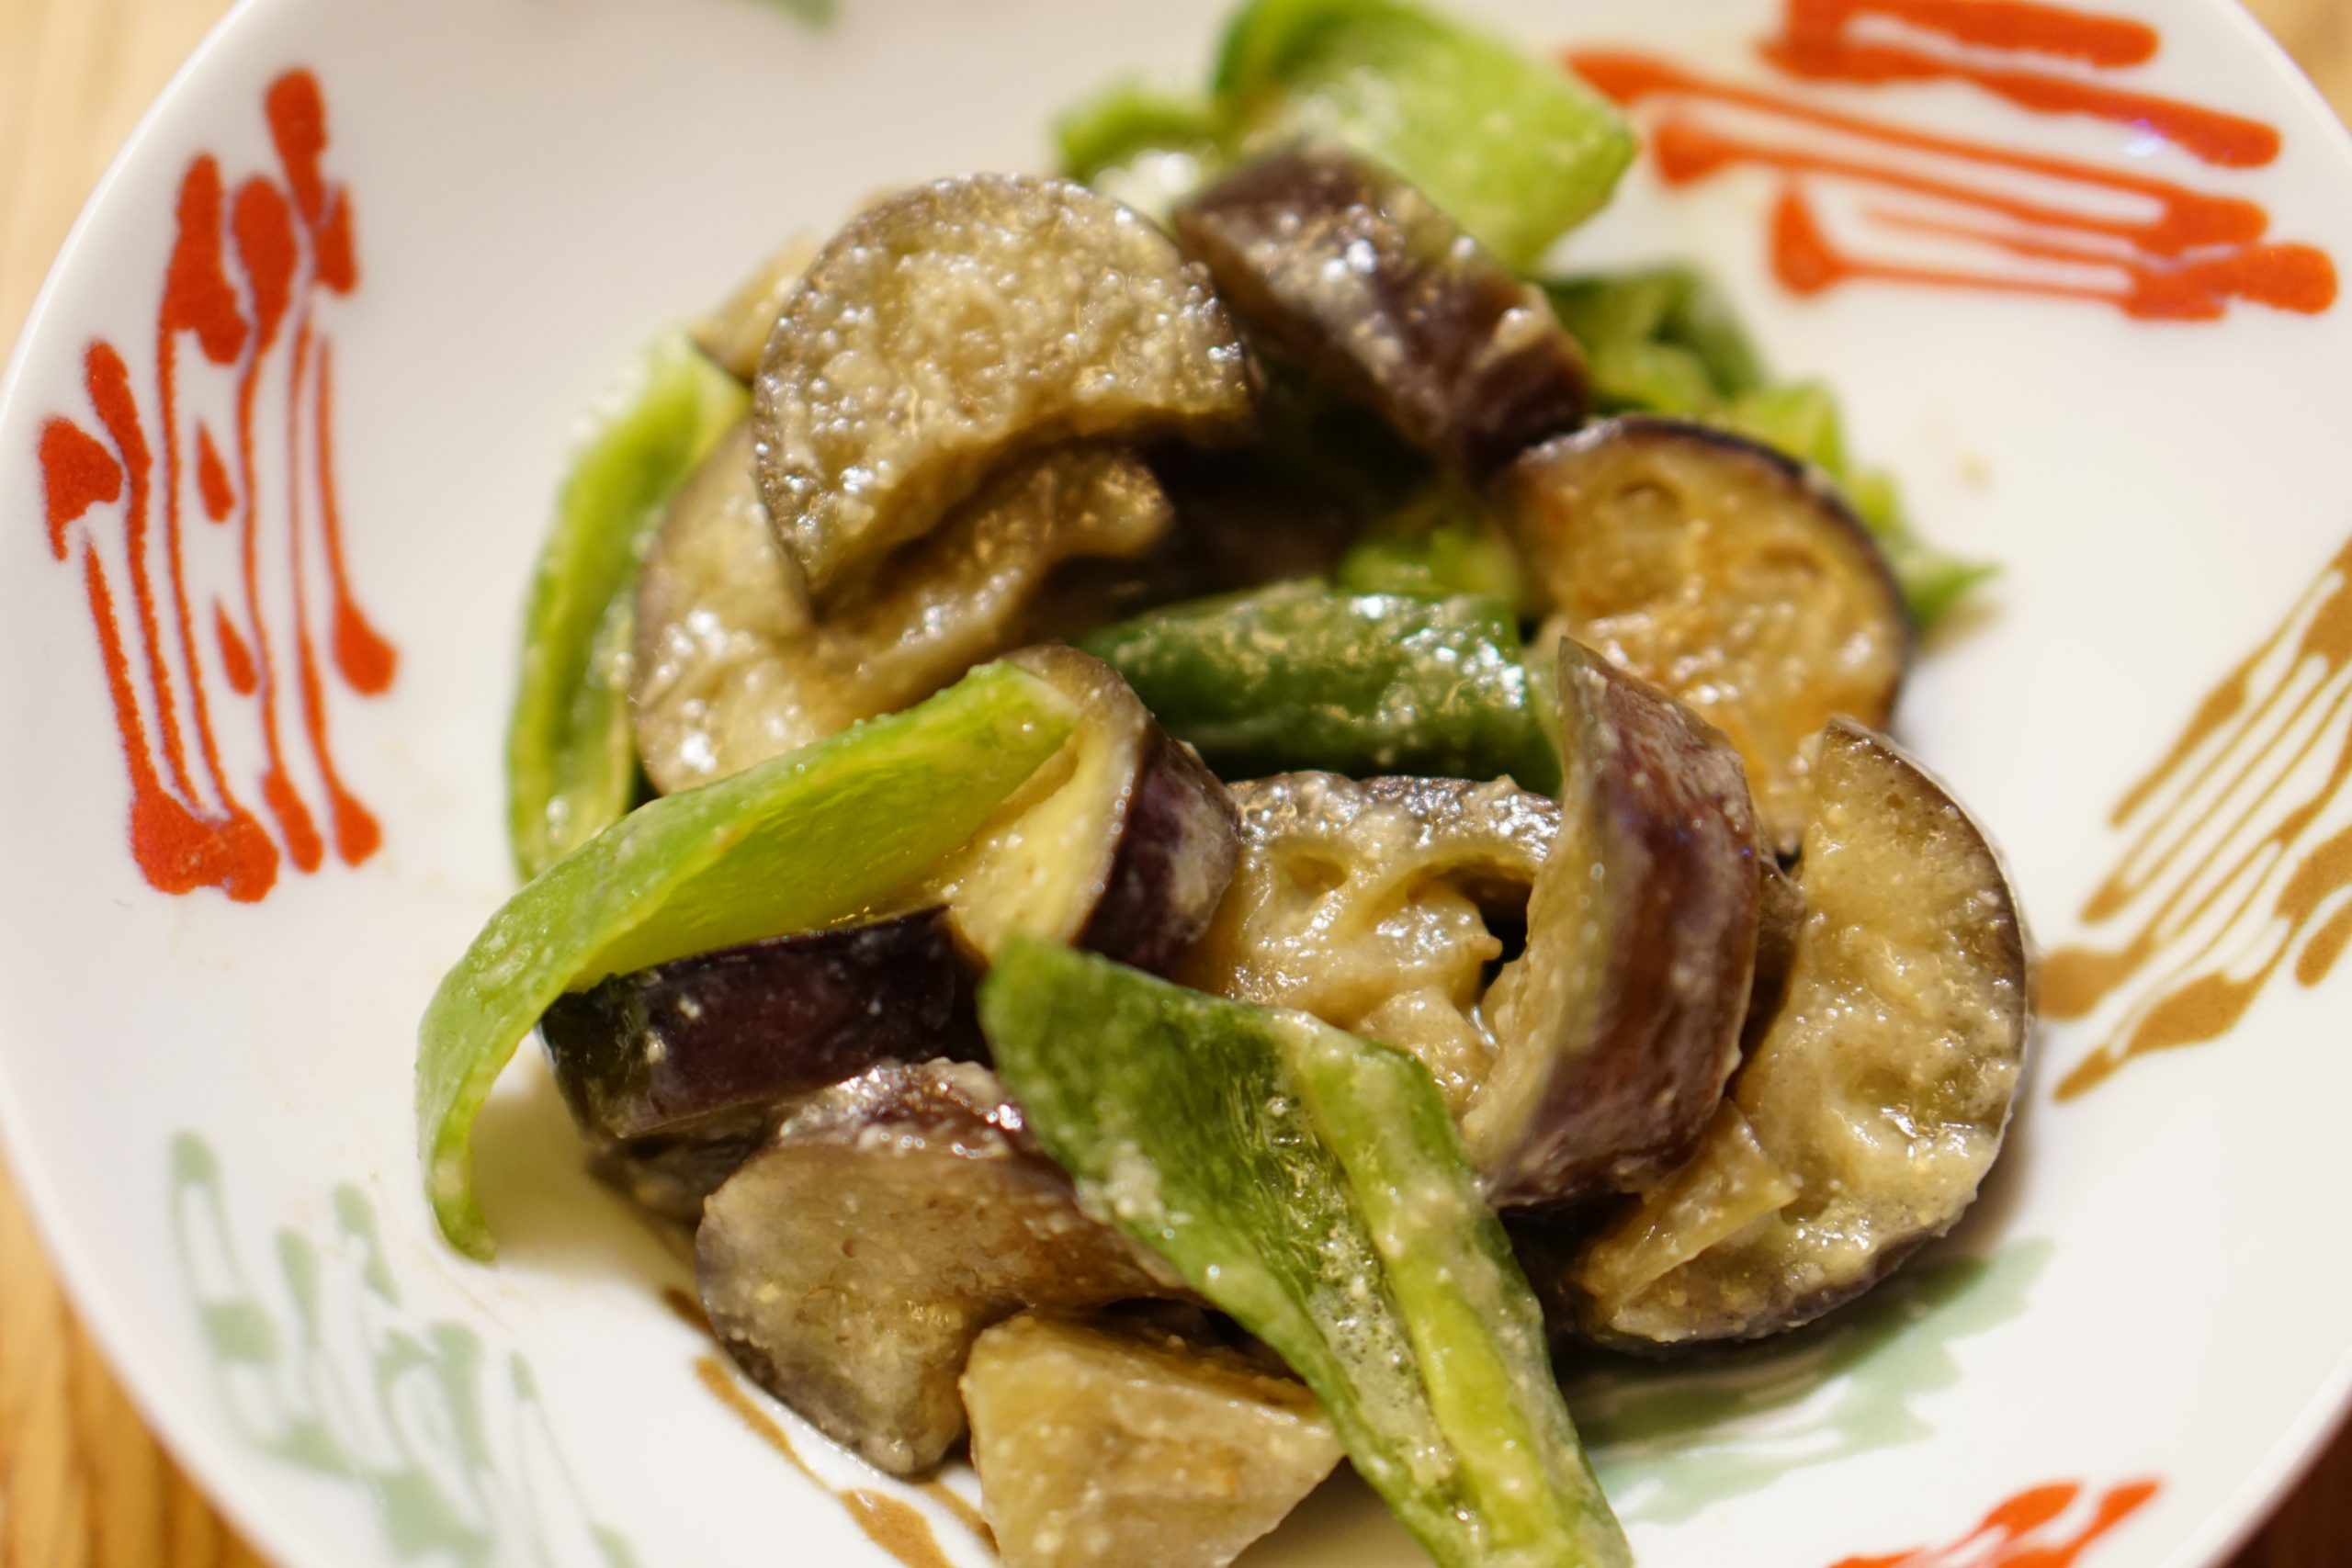 Sweet Miso-Braised Eggplant and Green Pepper - Preparation